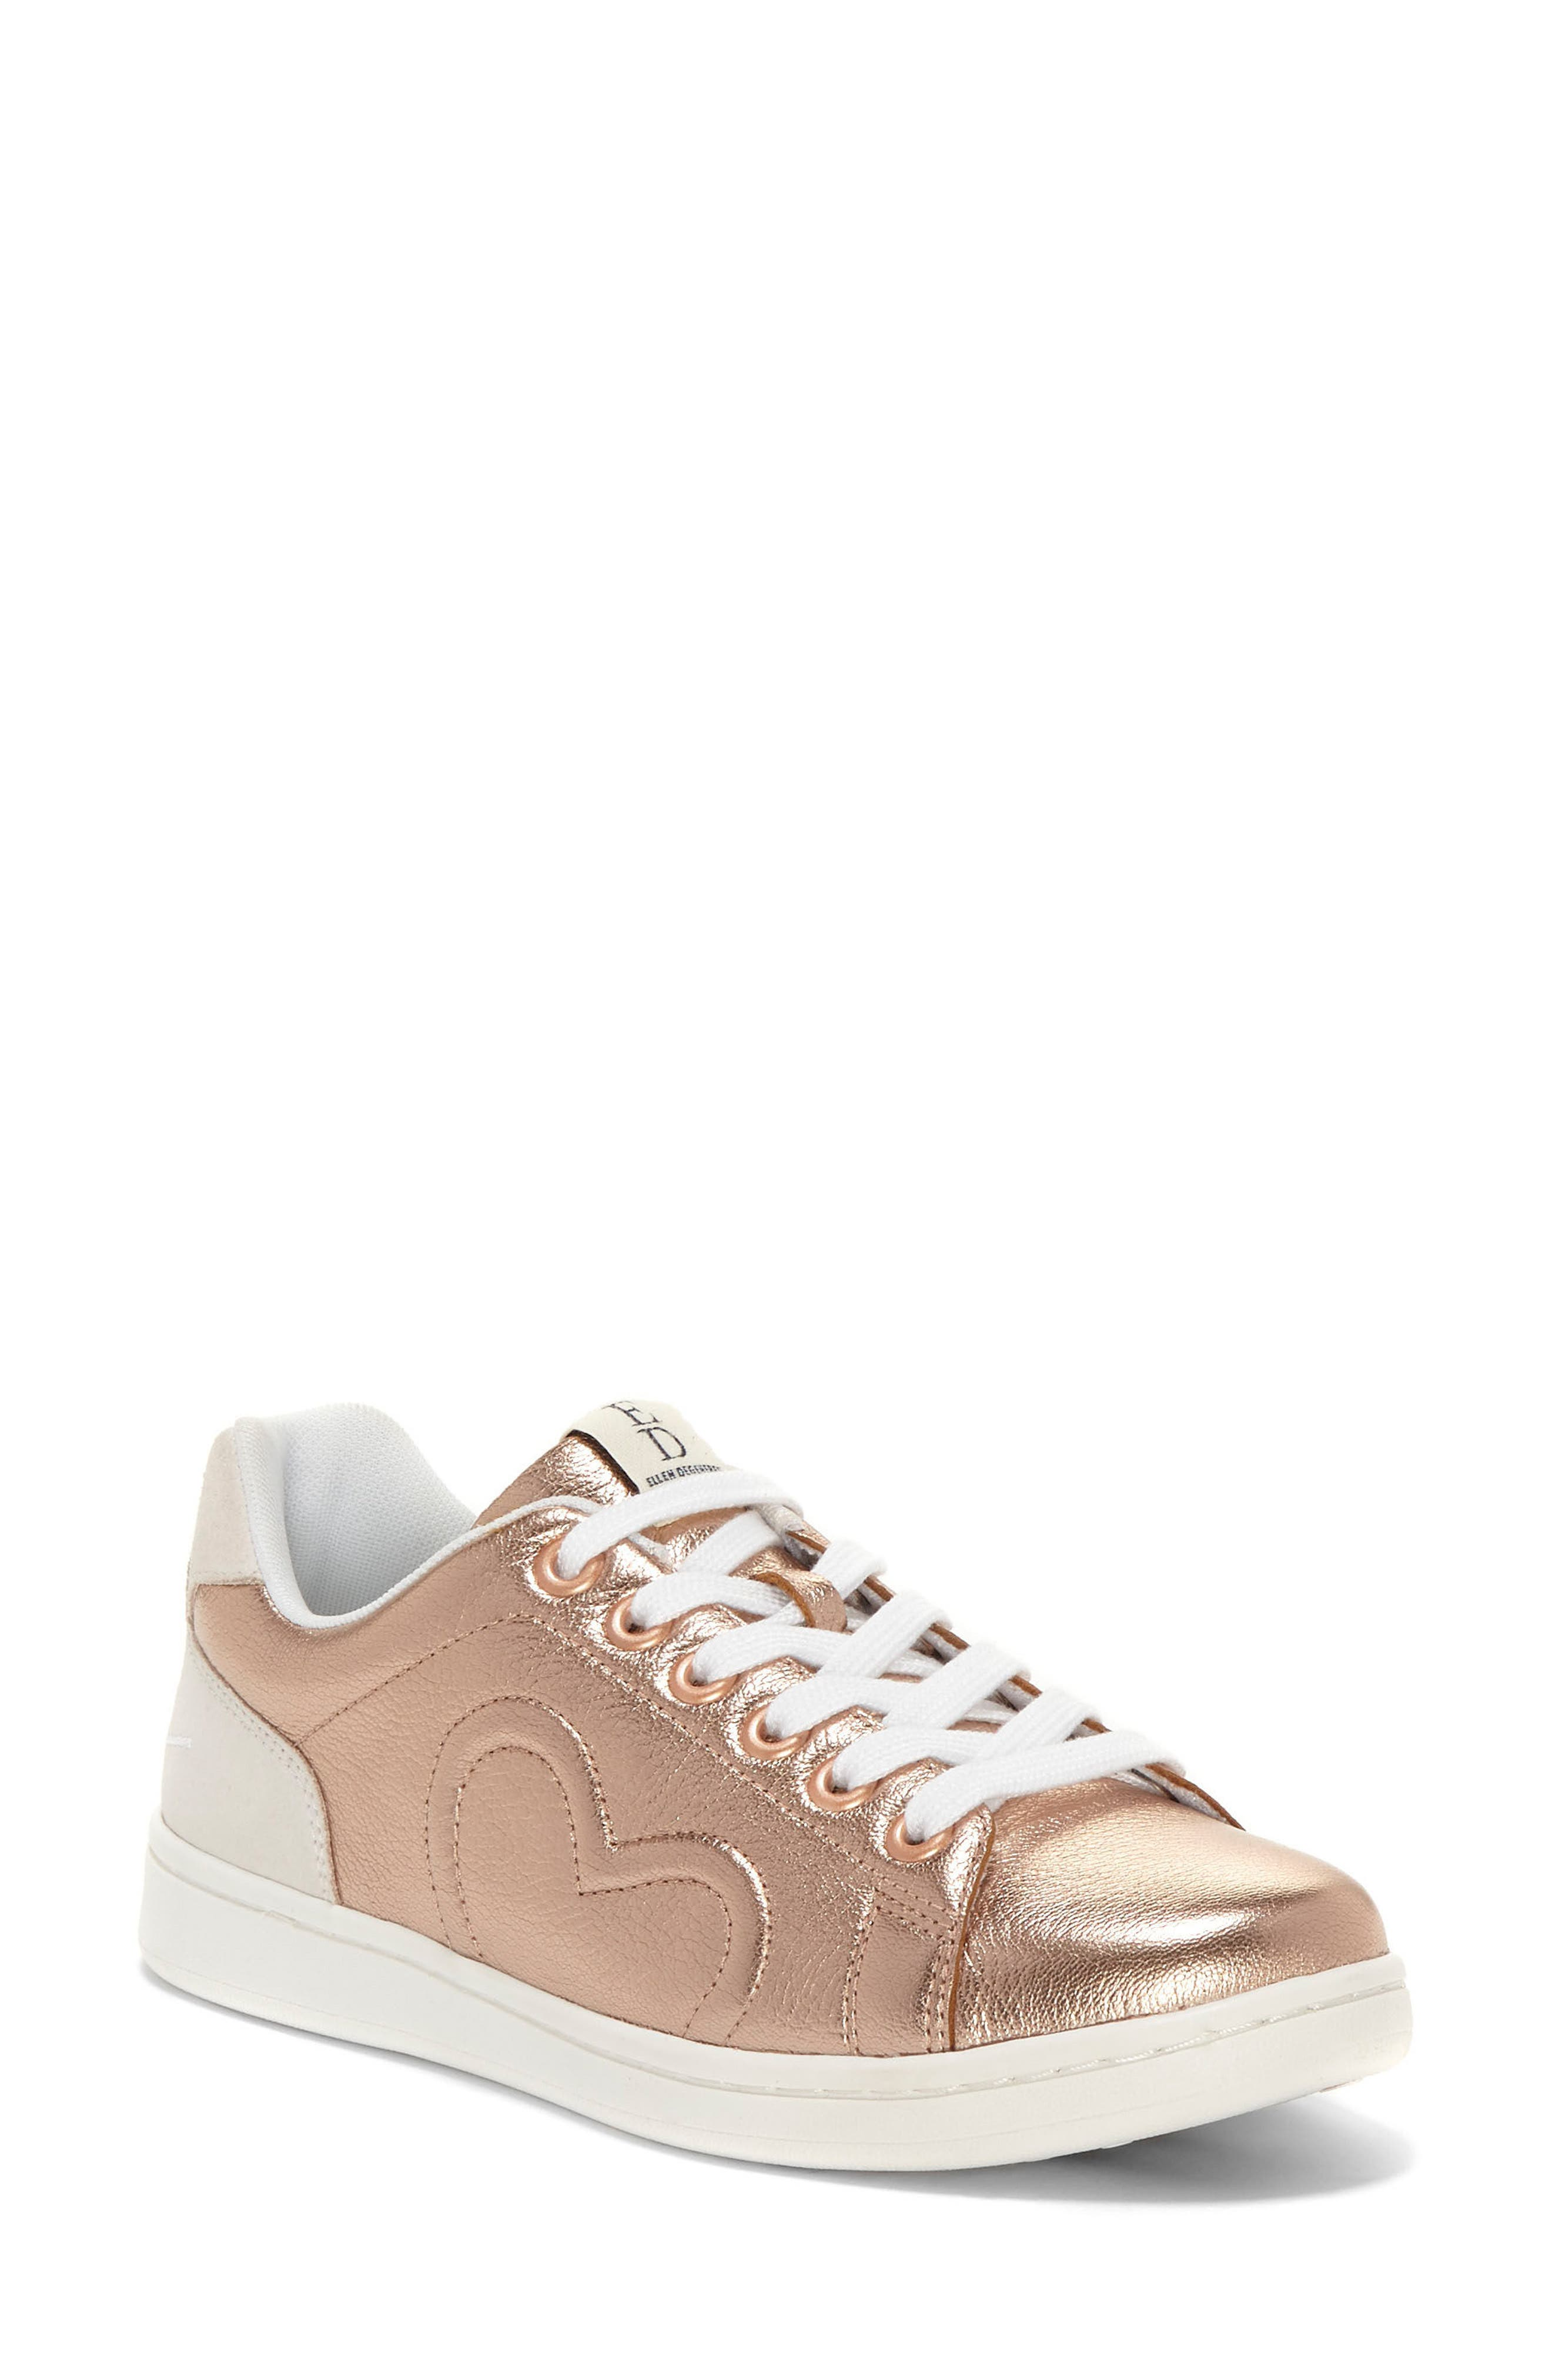 Chapunto Sneaker,                             Main thumbnail 1, color,                             Rose Gold Leather